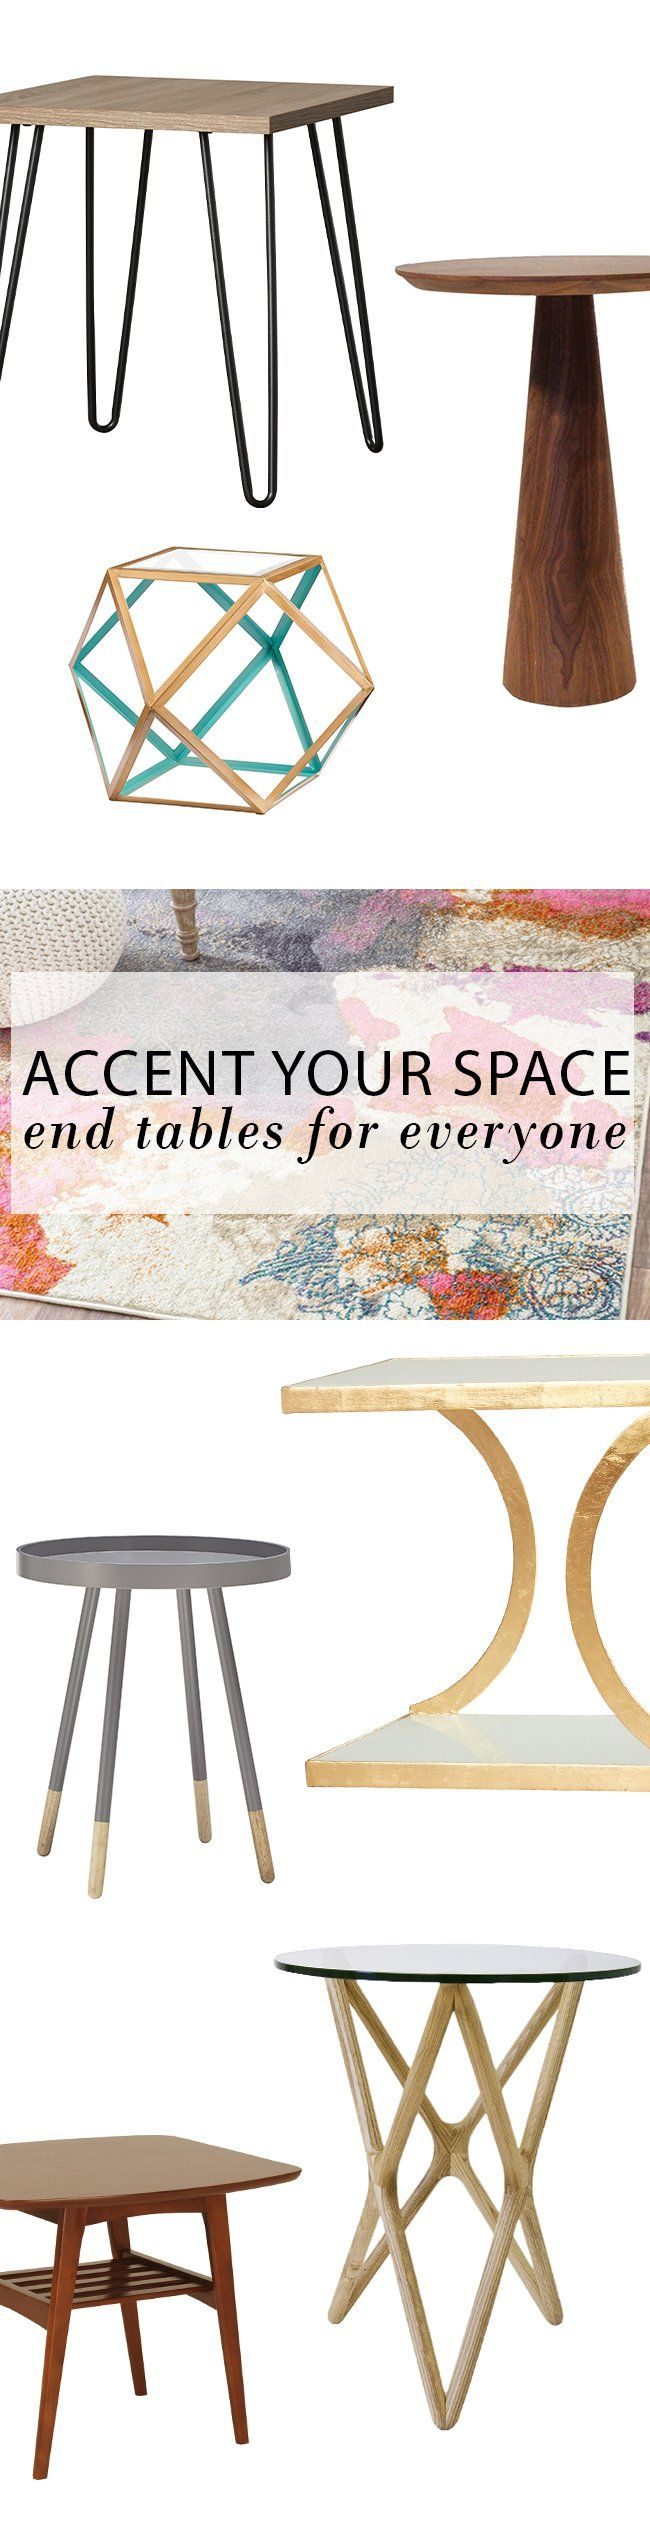 Accent your space with a little something that makes a big difference. Casual, elegant, or striking and always functional these end tables will make any space uniquely yours. Visit AllModern today and sign up for exclusive access to deals for your modern home. Free shipping on orders over $49!